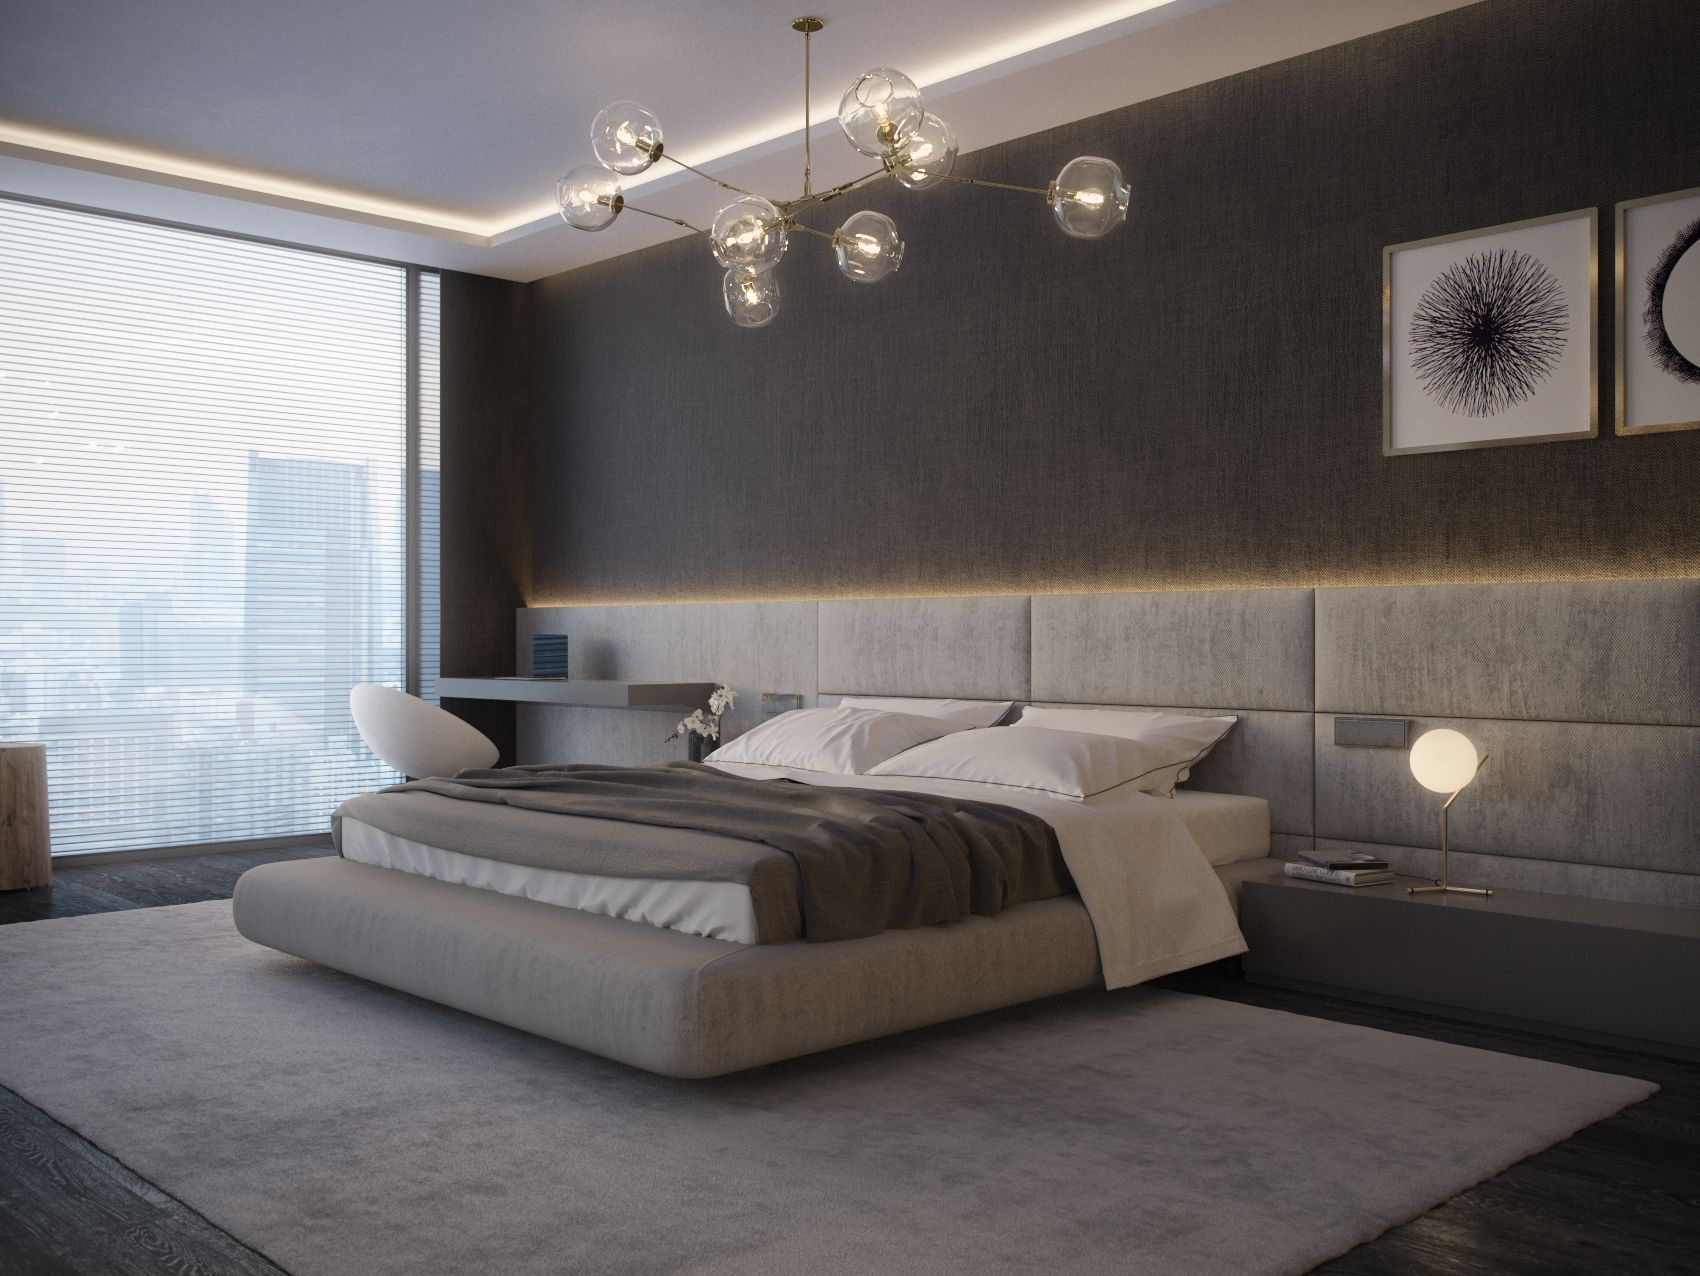 Neutral tones for bedroom is always  good idea with an exquisite lighting that make the room remarkable interiors interiordesign architecture also best design ideas you to apply in your home rh pinterest